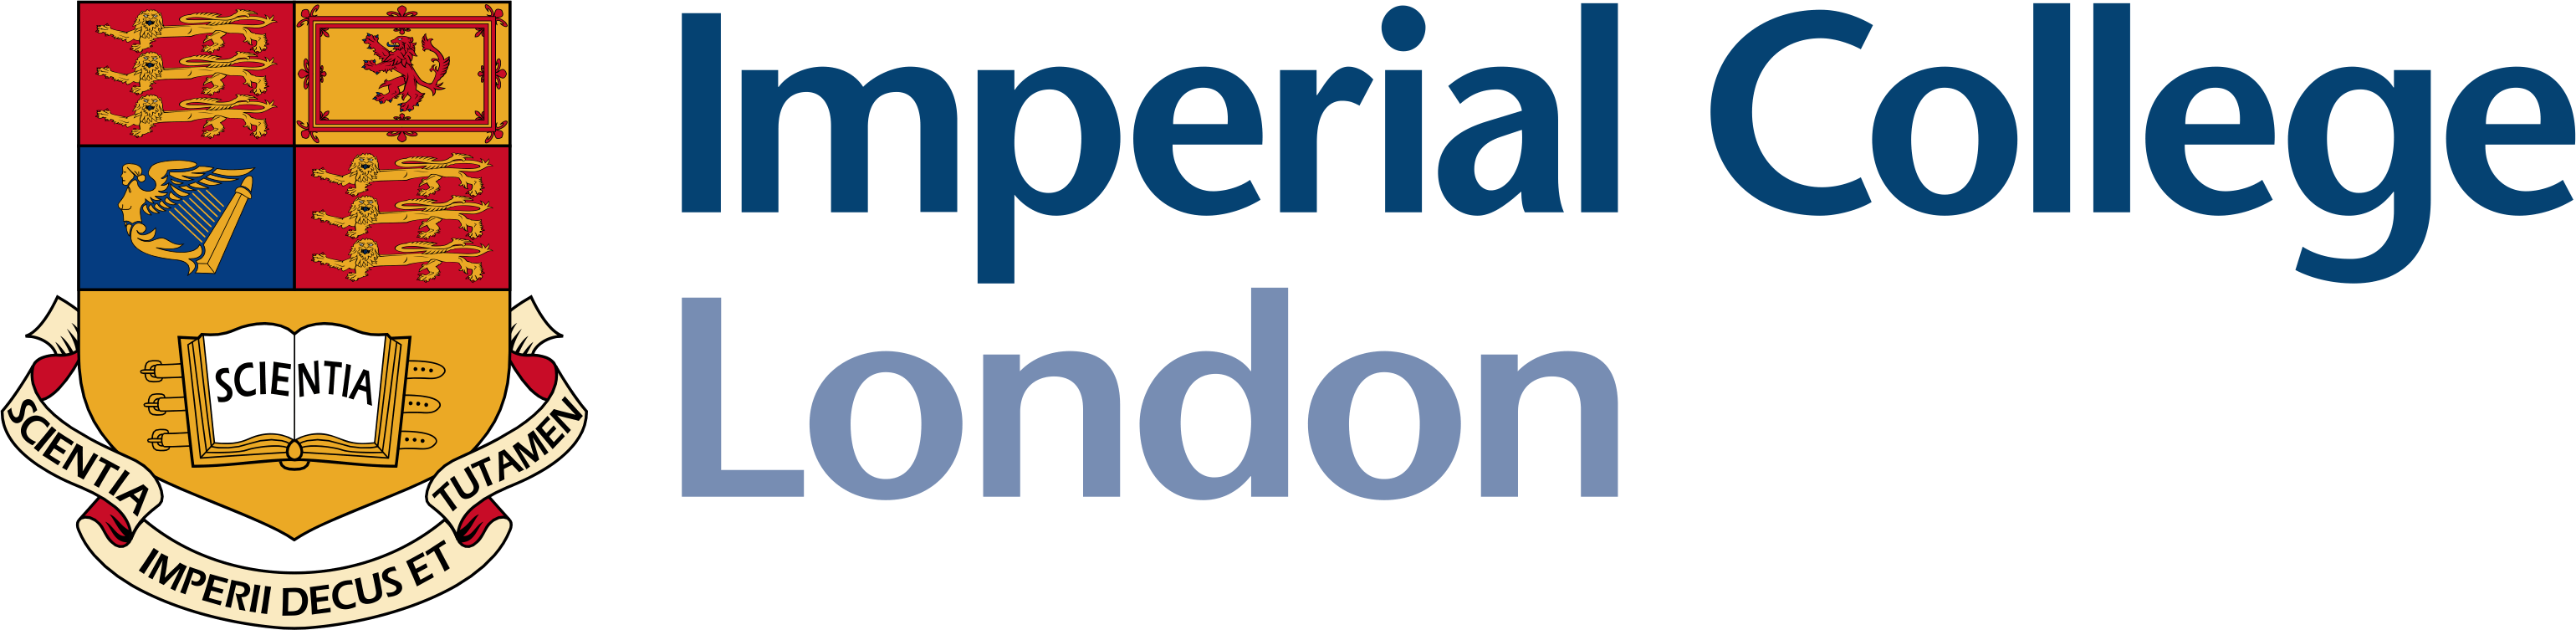 6 logo Imperial College London2 1